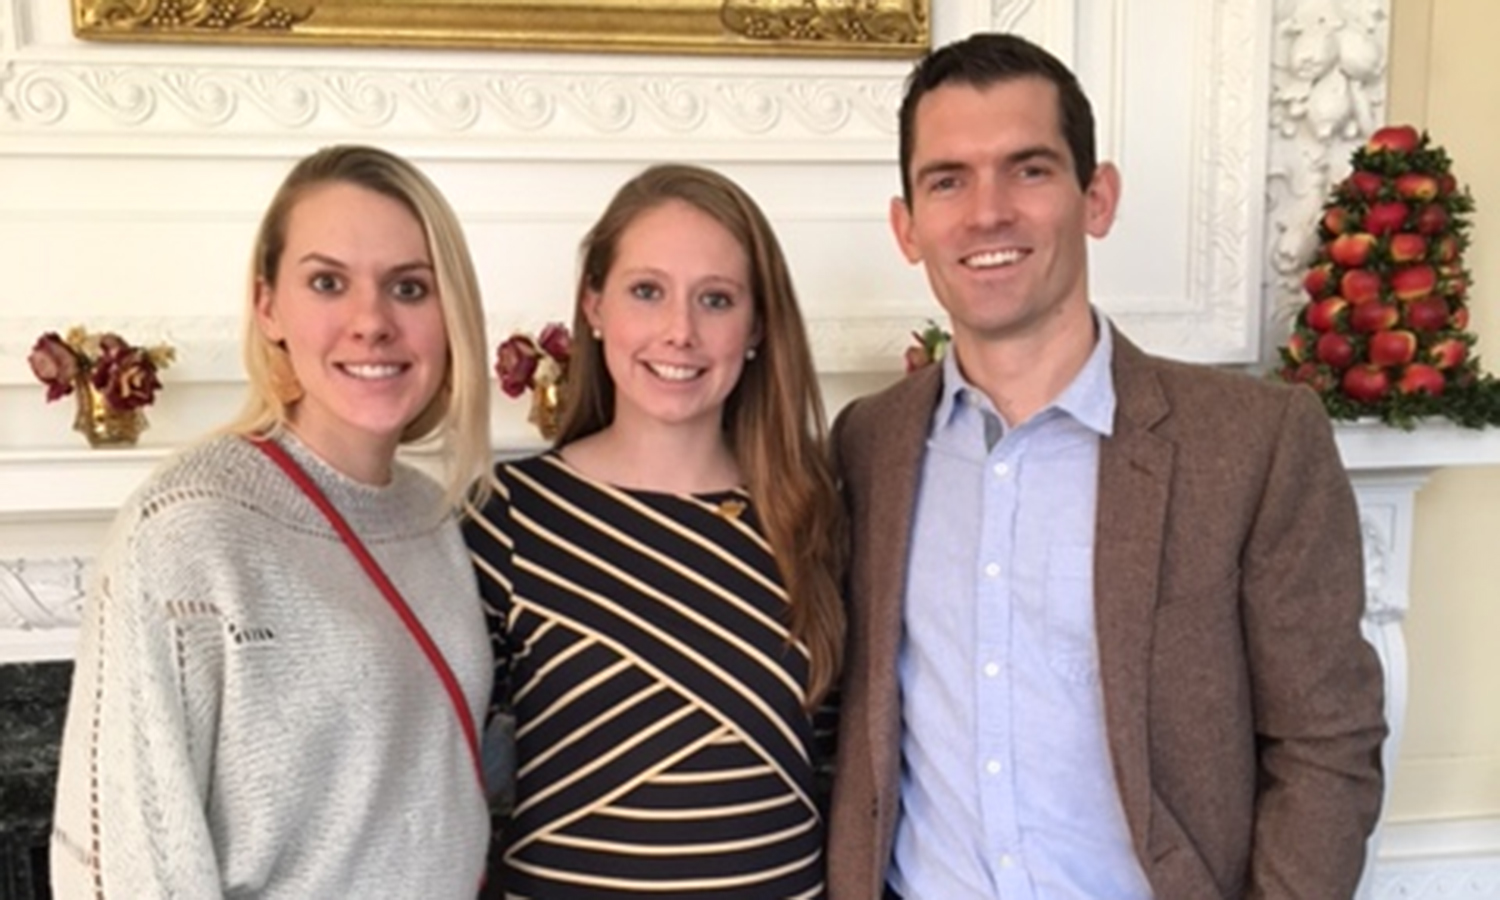 Olivia Zitoli, '14, and Tim Sharkey, '10, with Madeline Buckley, '15, at her graduation ceremony at Wheelock College in Boston on Sunday. Buckley earned her Master of Science in Child Life Studies.